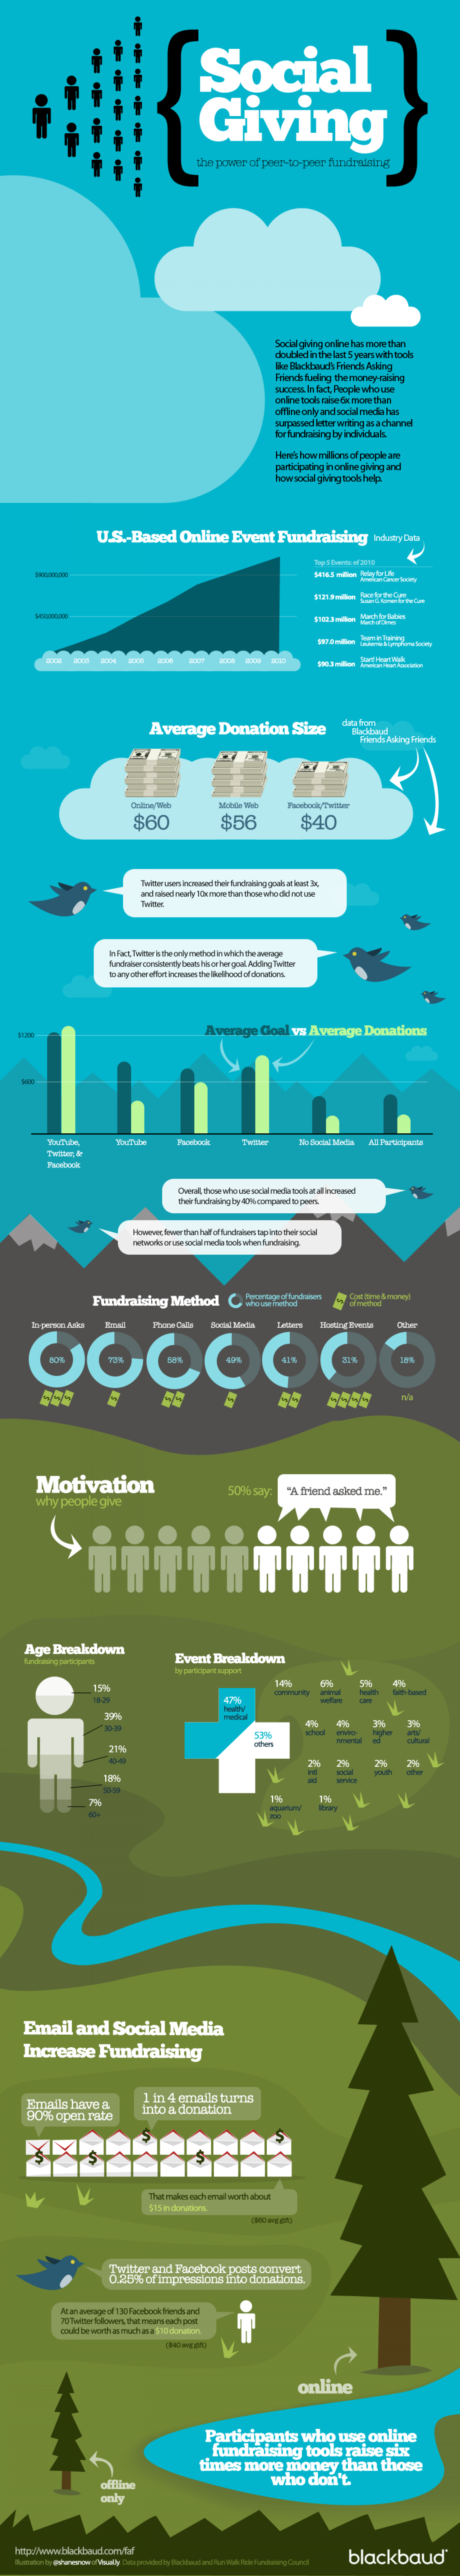 Social Giving The Power of Peer to Peer Fundraising  Infographic